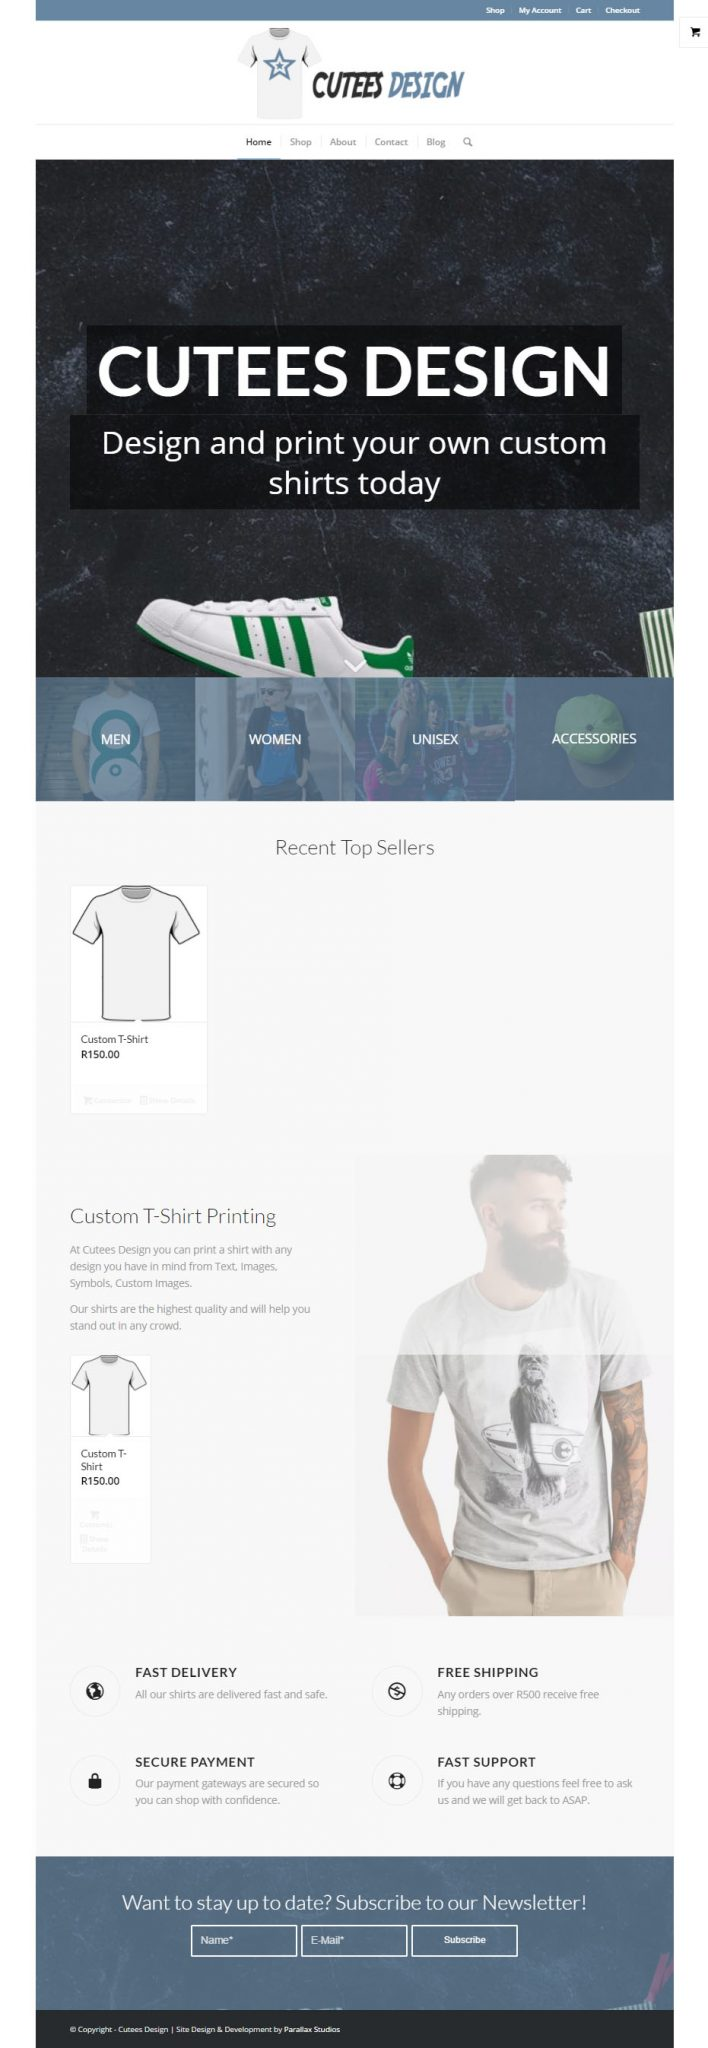 T shirt design quick delivery - Design Your Own T Shirt Quick Delivery Design Your Own T Shirt Quick Delivery Design